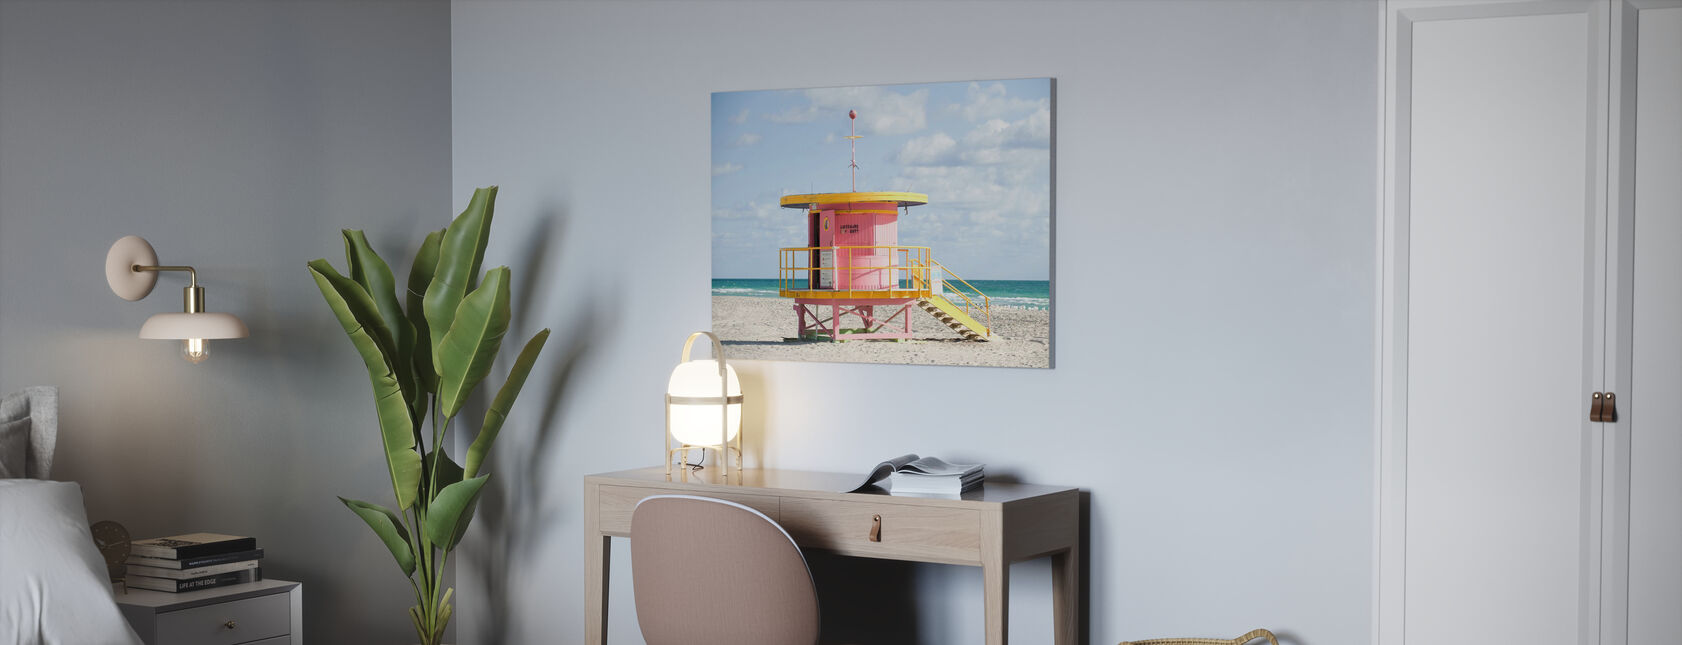 Lifeguard Tower in Miami, USA - Canvas print - Office